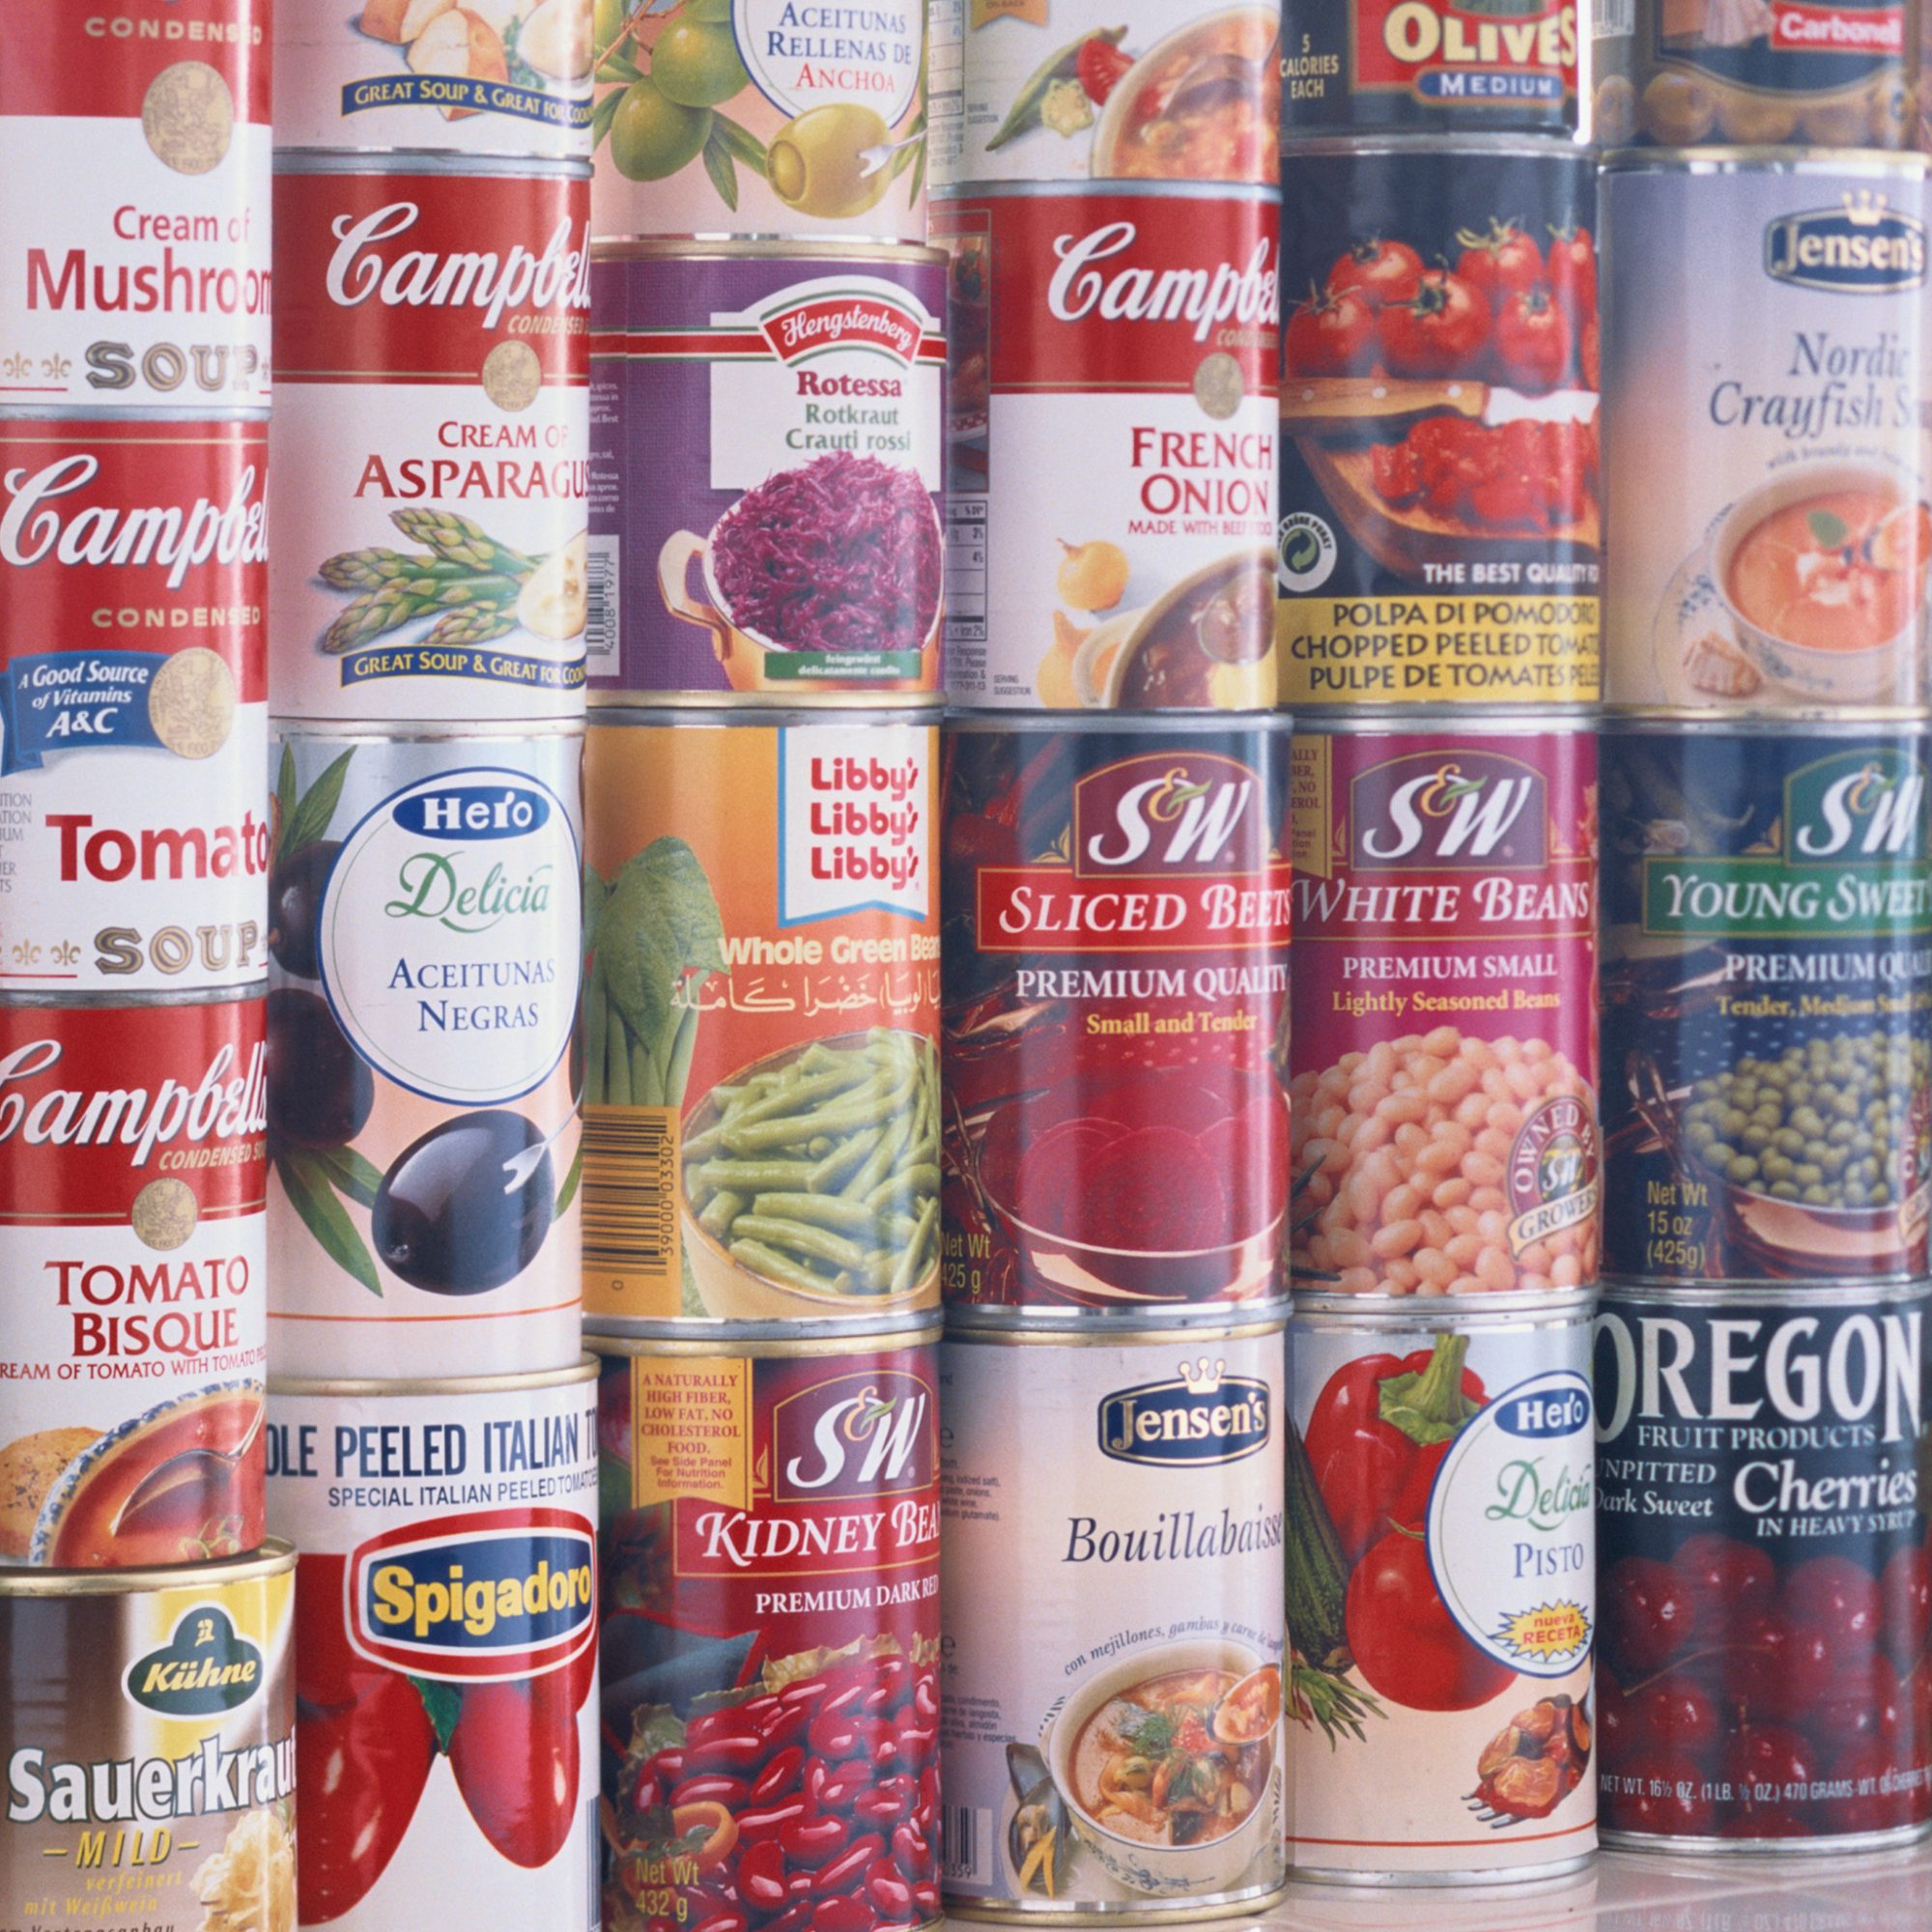 FWX PAYING PARKING TICKETS WITH CANNED FOOD